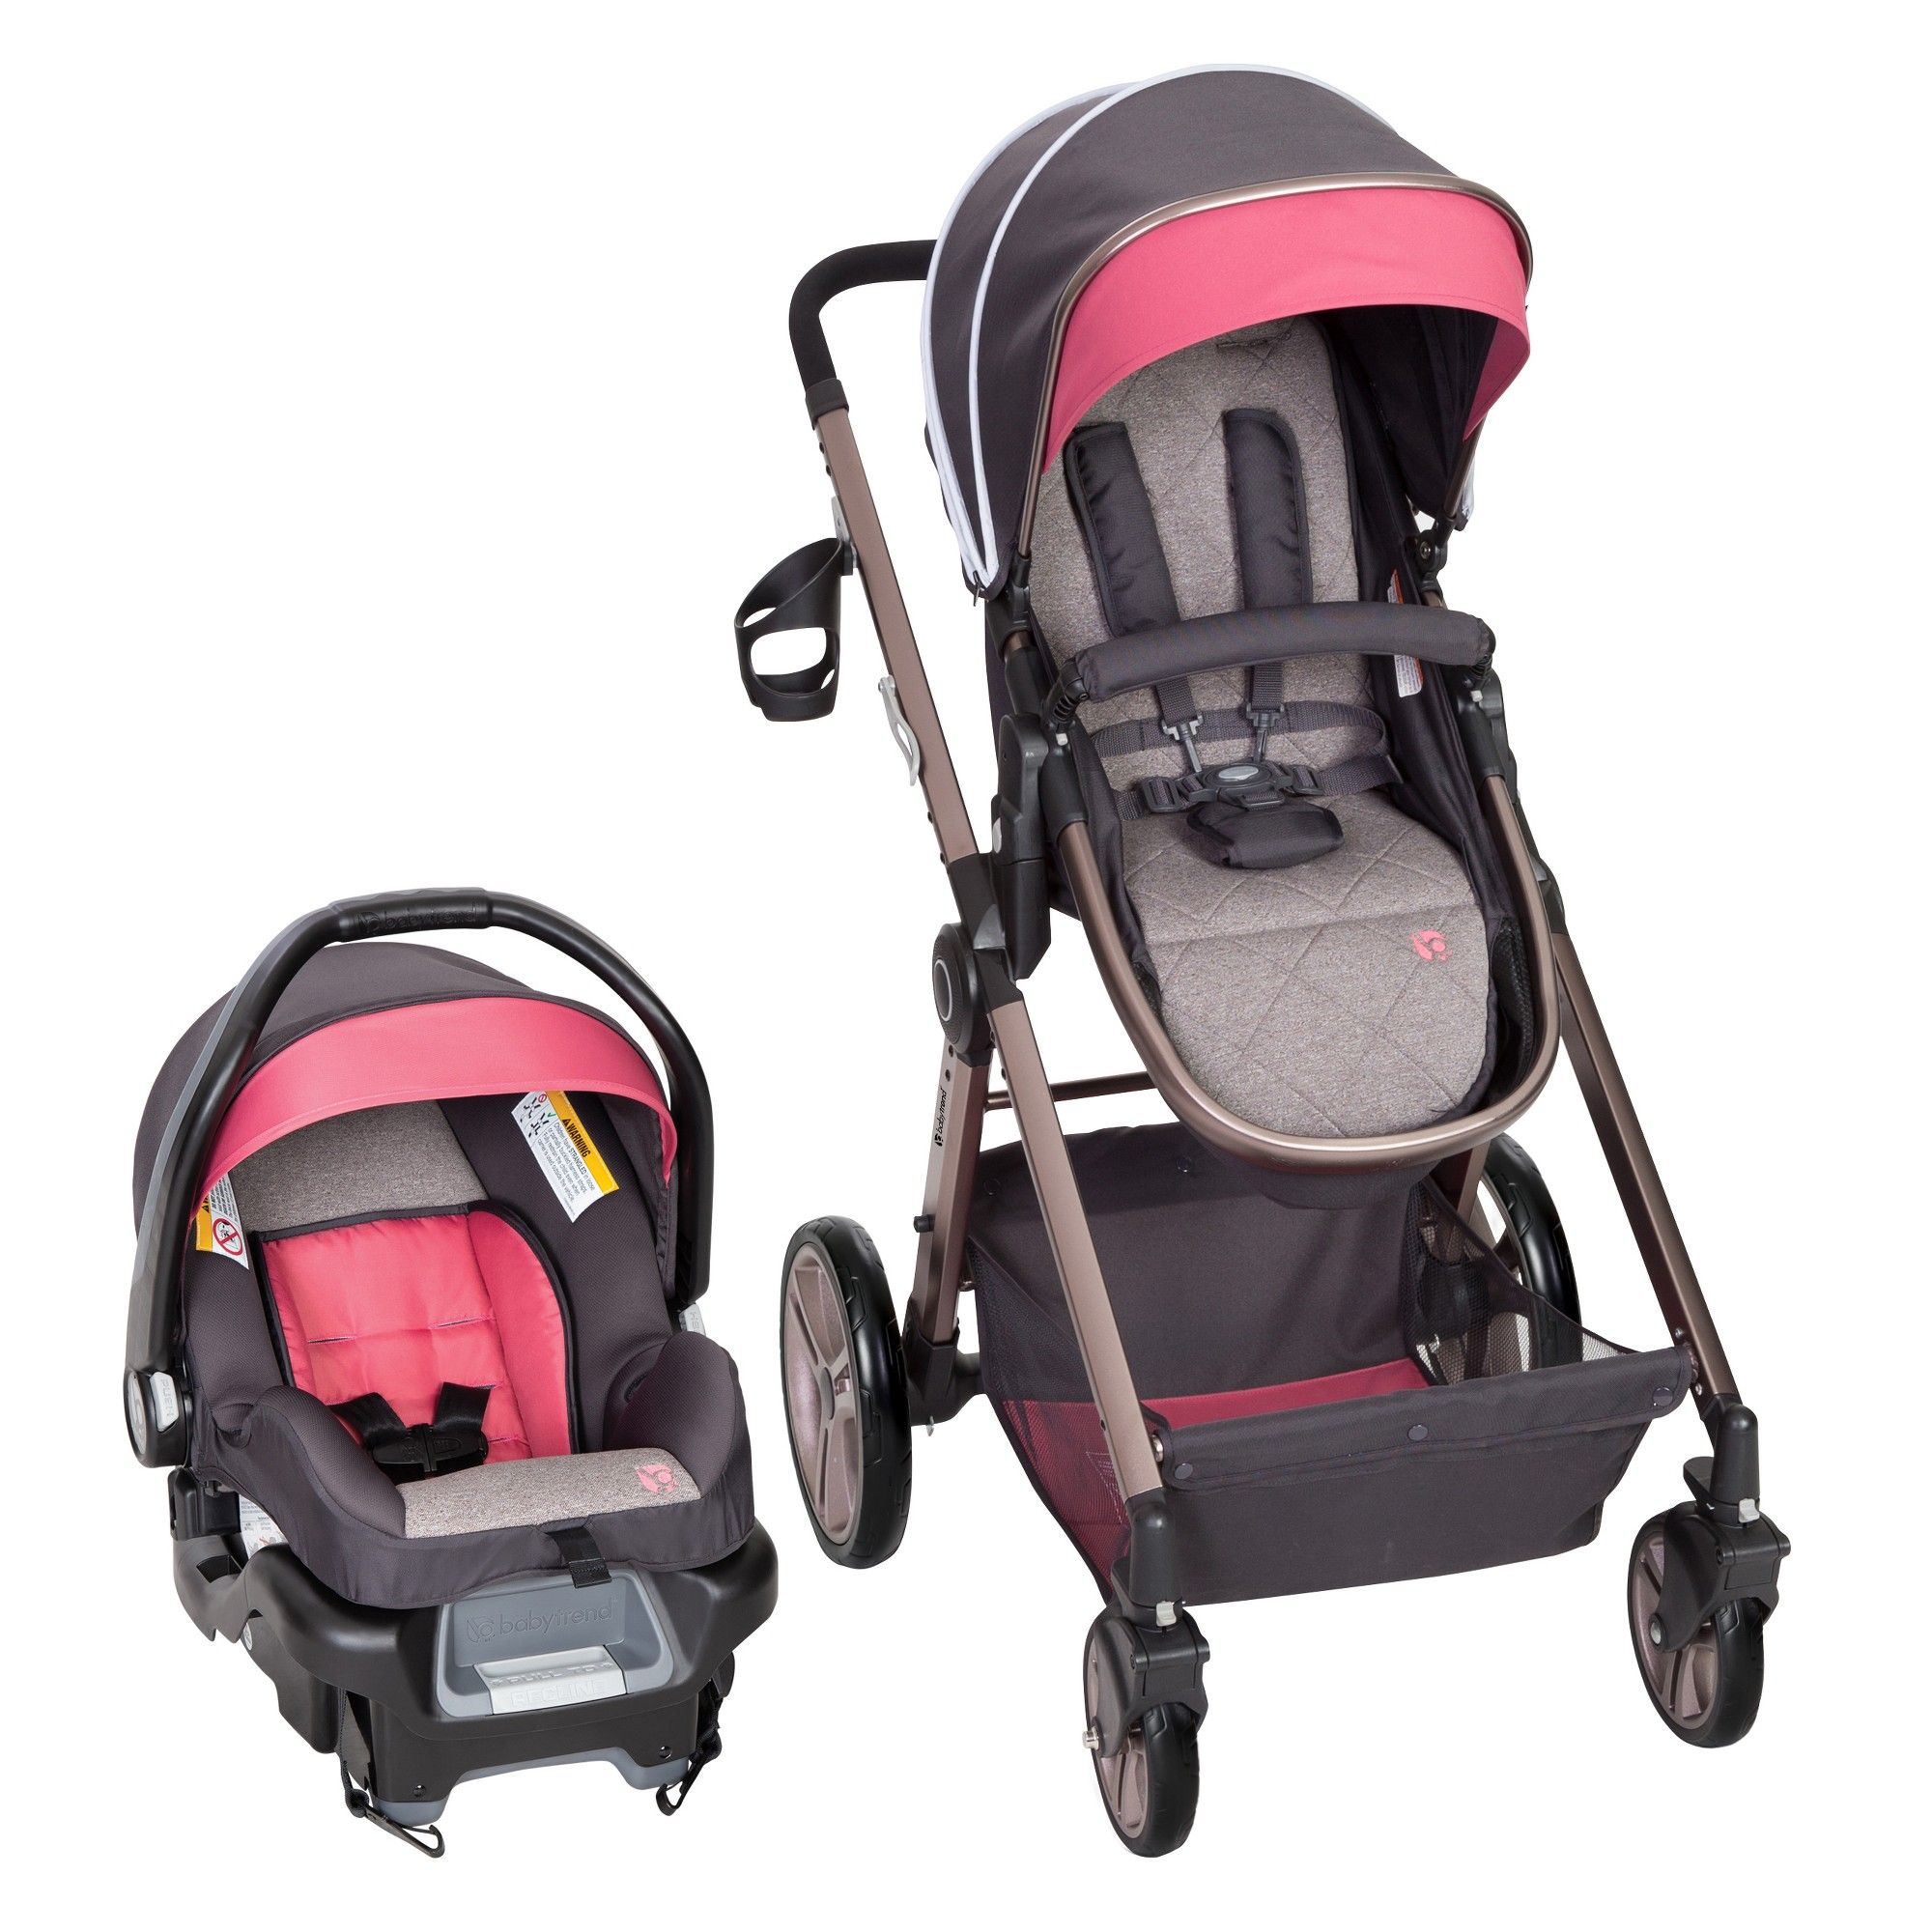 Baby Trend Expedition Jogger Travel System Vs Graco